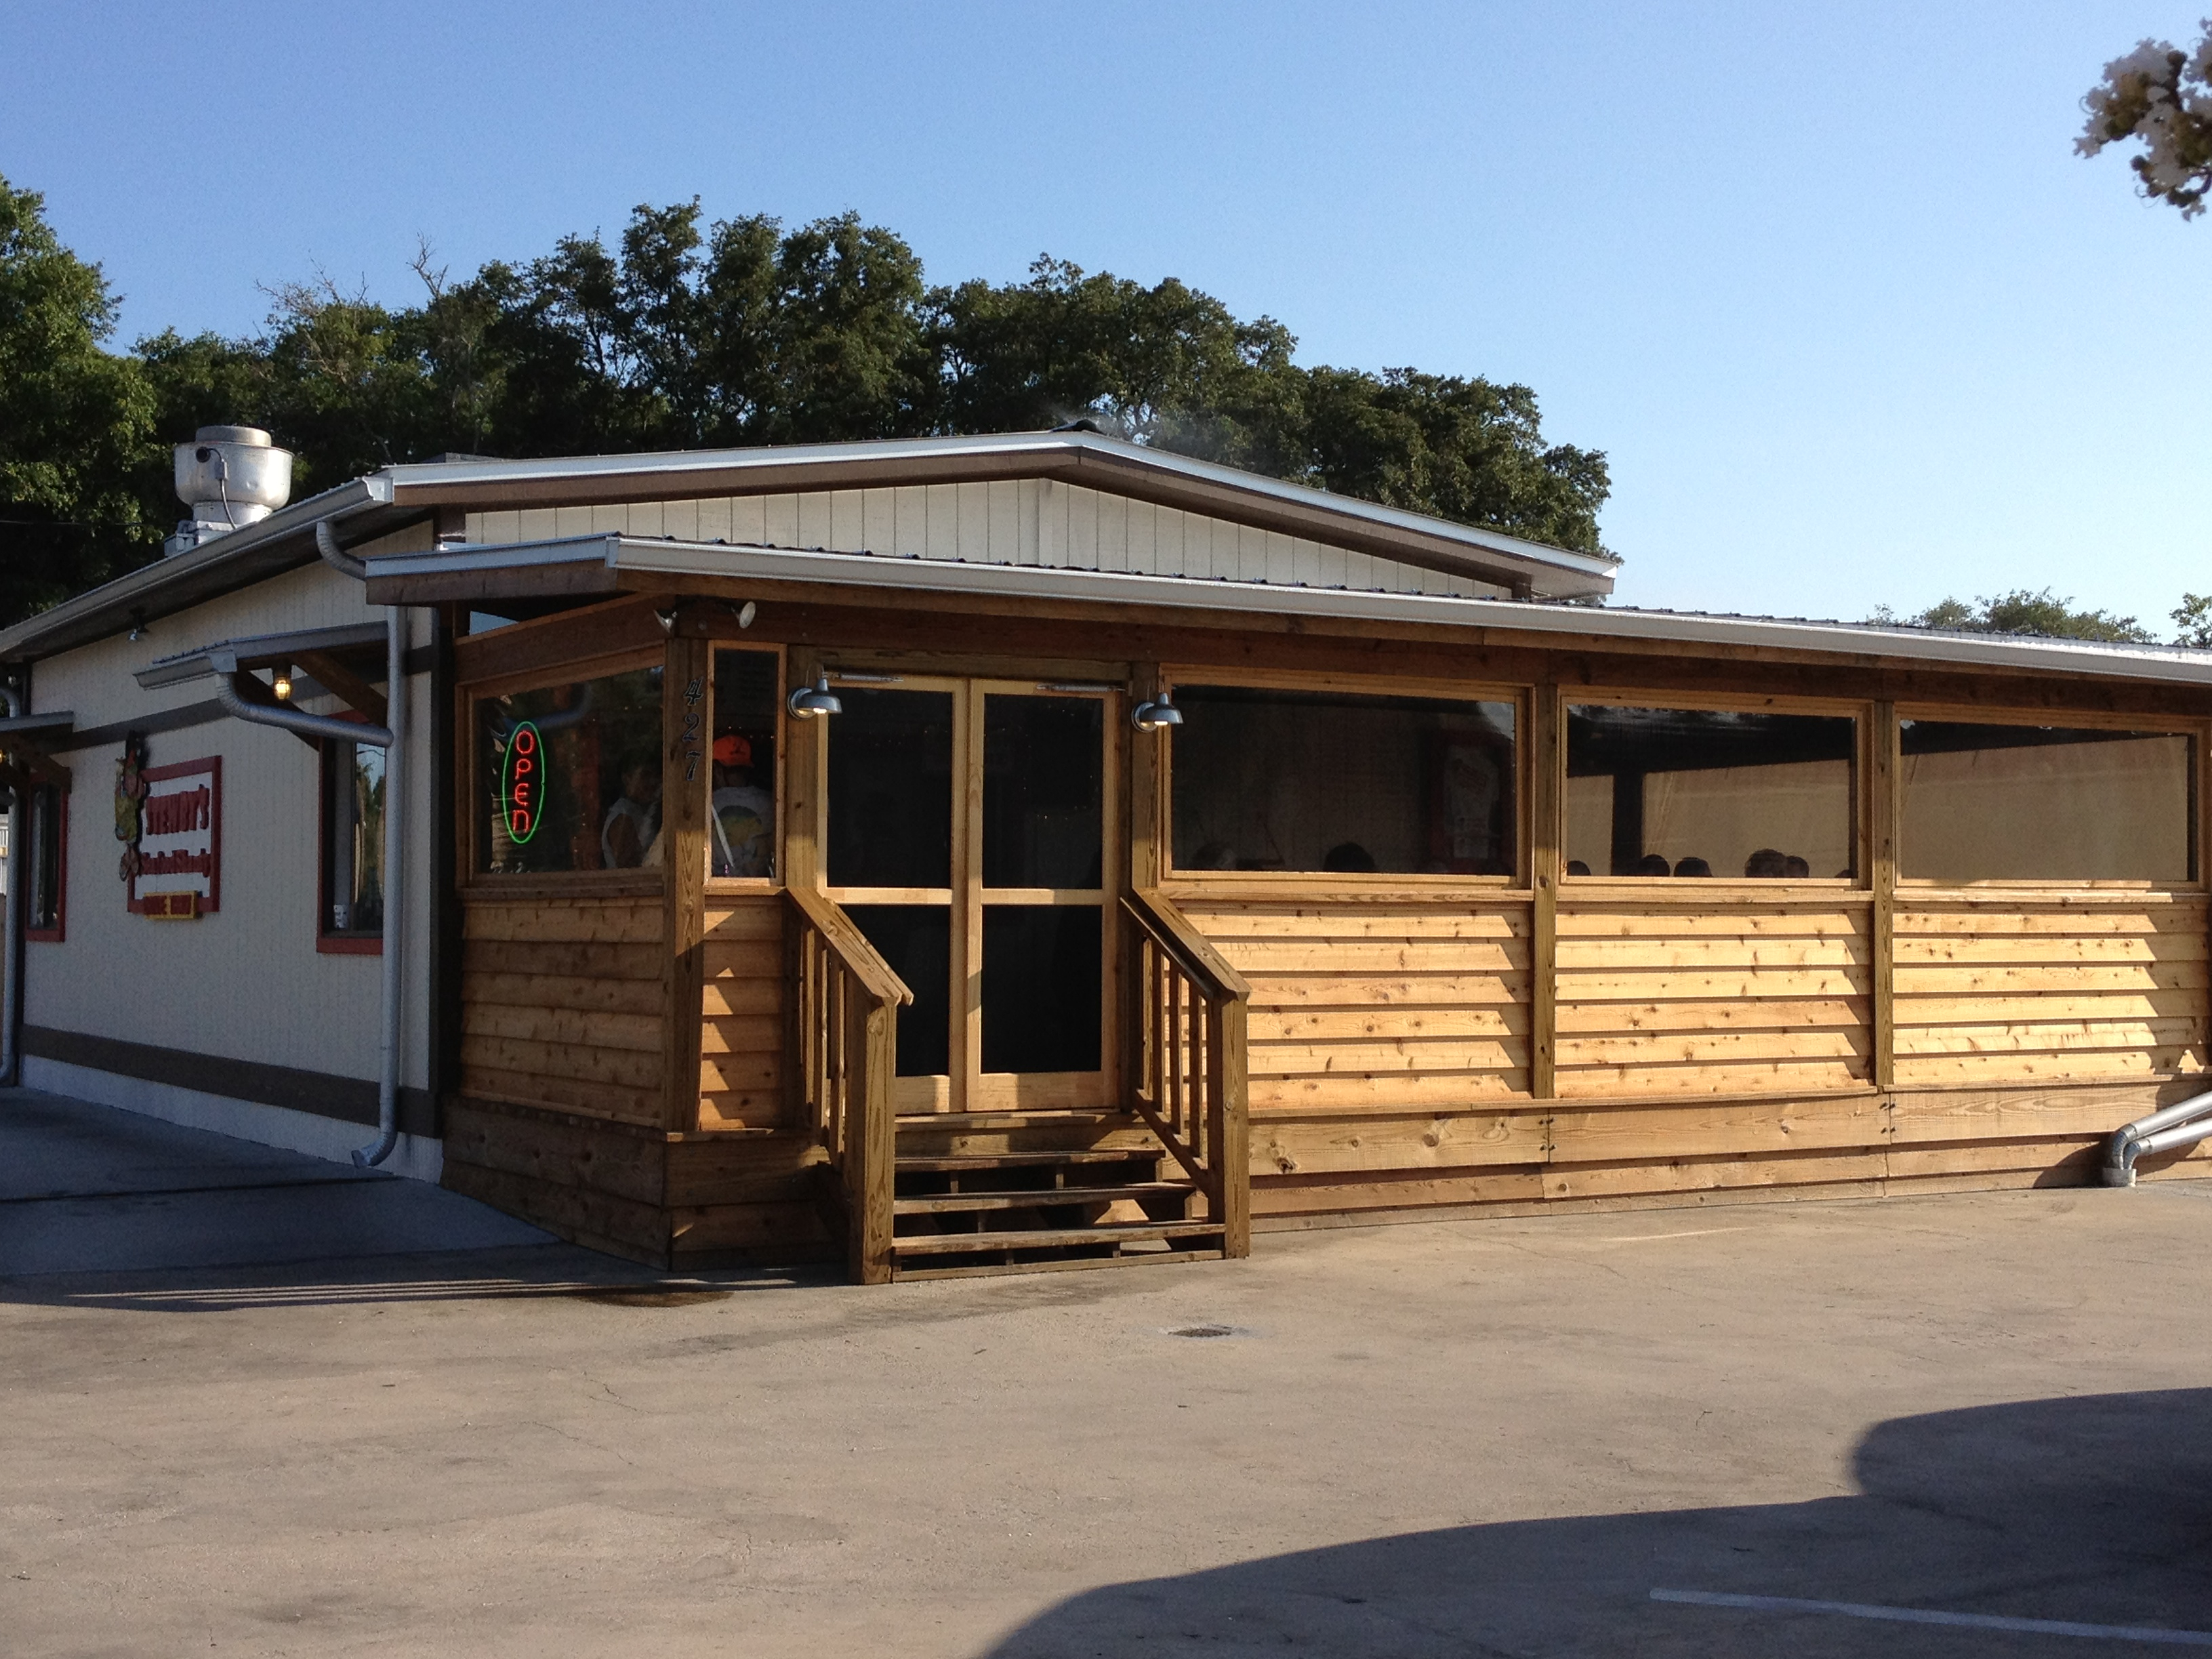 Stewby 39 s seafood shanty restaurant in fort walton for Old florida fish house menu